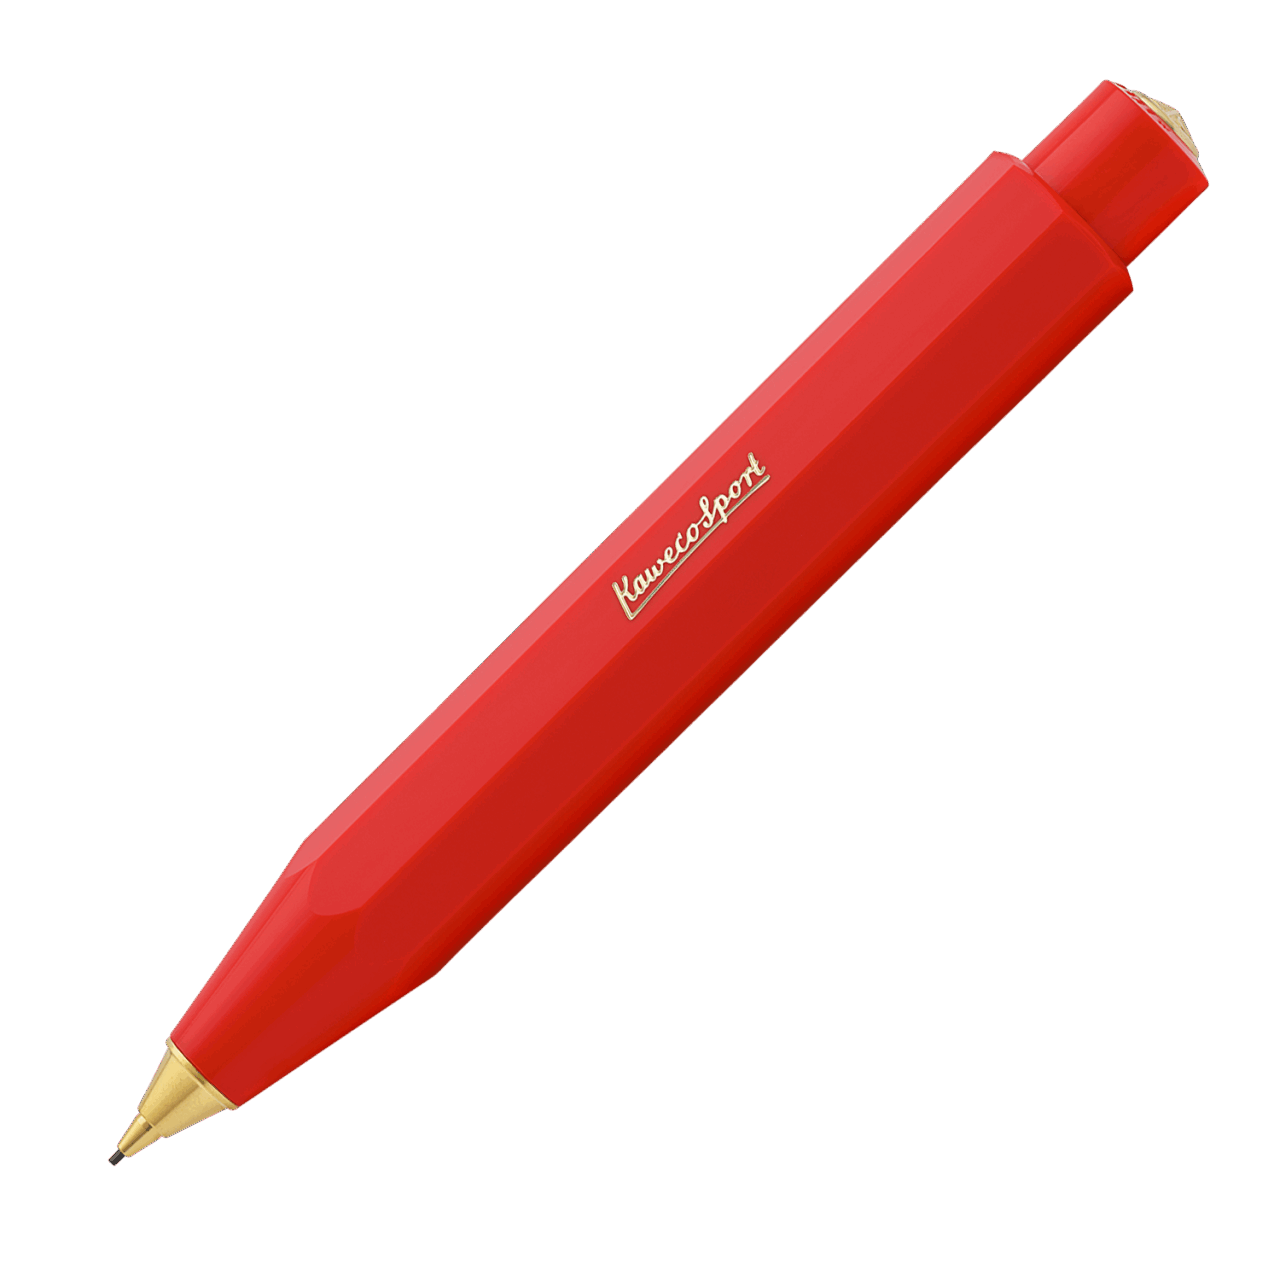 Kaweco CLASSIC SPORT Mechanical Pencil 0.7 mm red